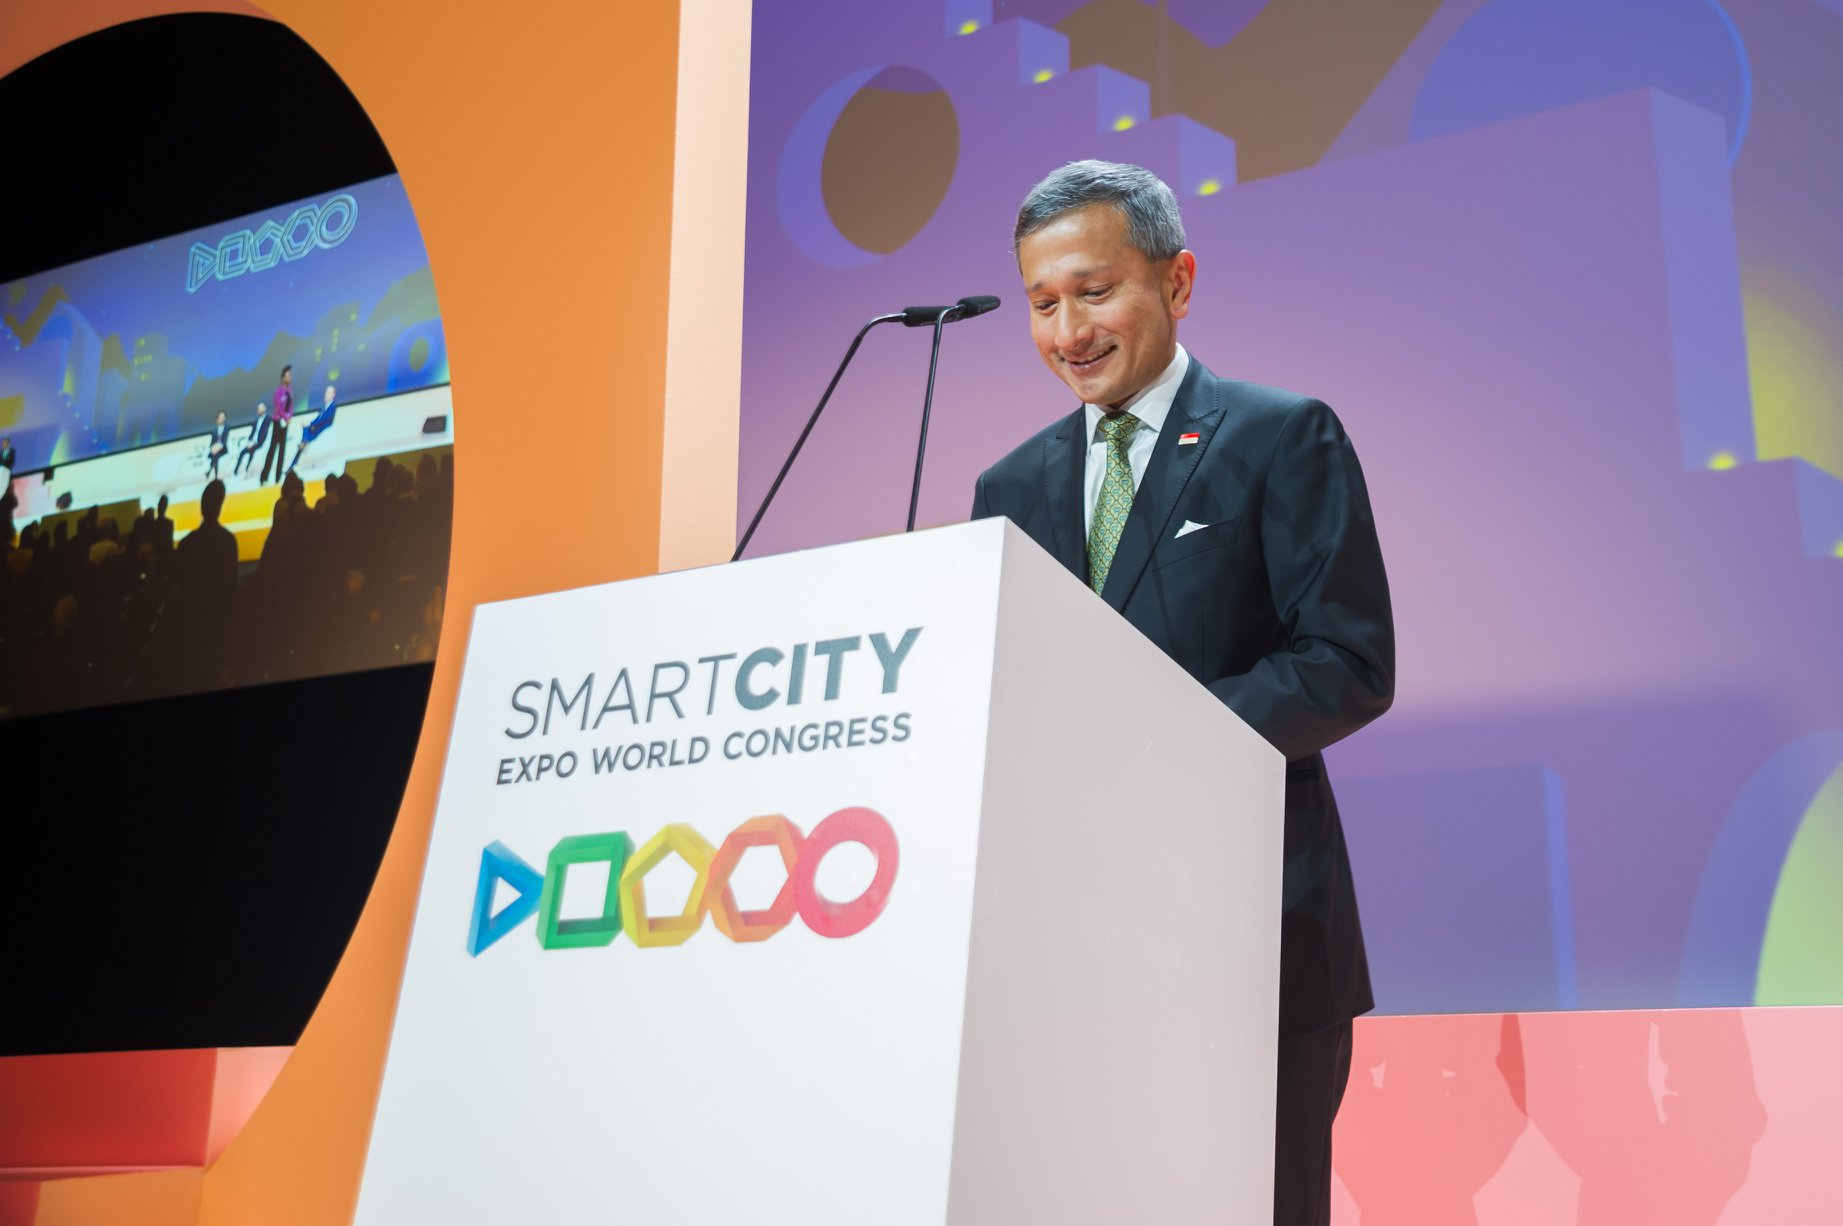 Minister in-charge of the Smart Nation Initiative Dr Vivian Balakrishnan speaking at the ninth edition of the Smart City Expo World Congress in Barcelona. Photo courtesy: Vivian Balakrishnan FB